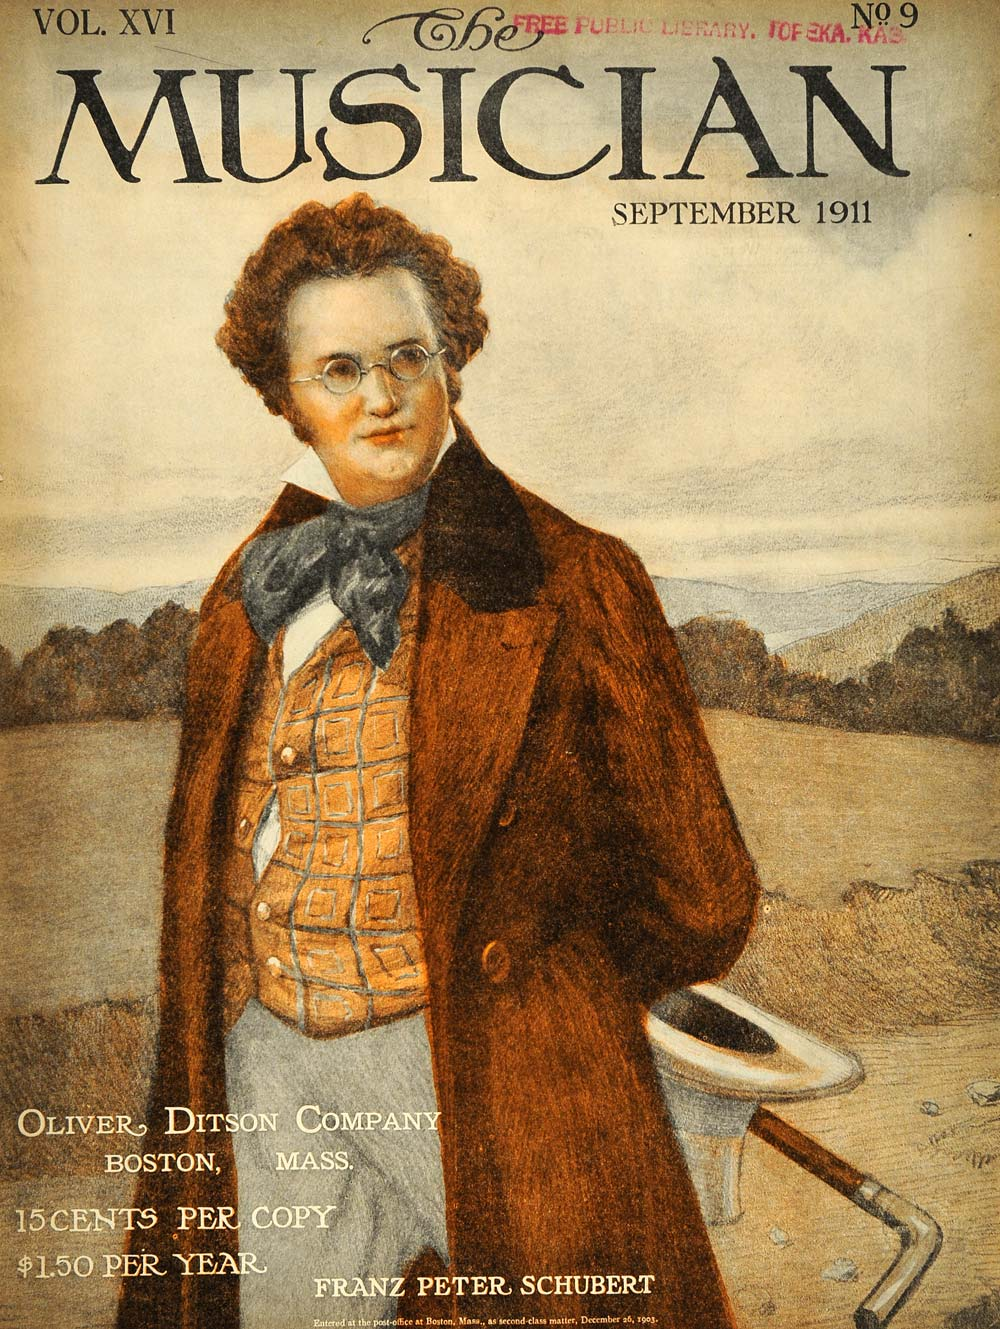 1911 Cover Musician Franz Peter Schubert Hill Portrait - ORIGINAL MUS1